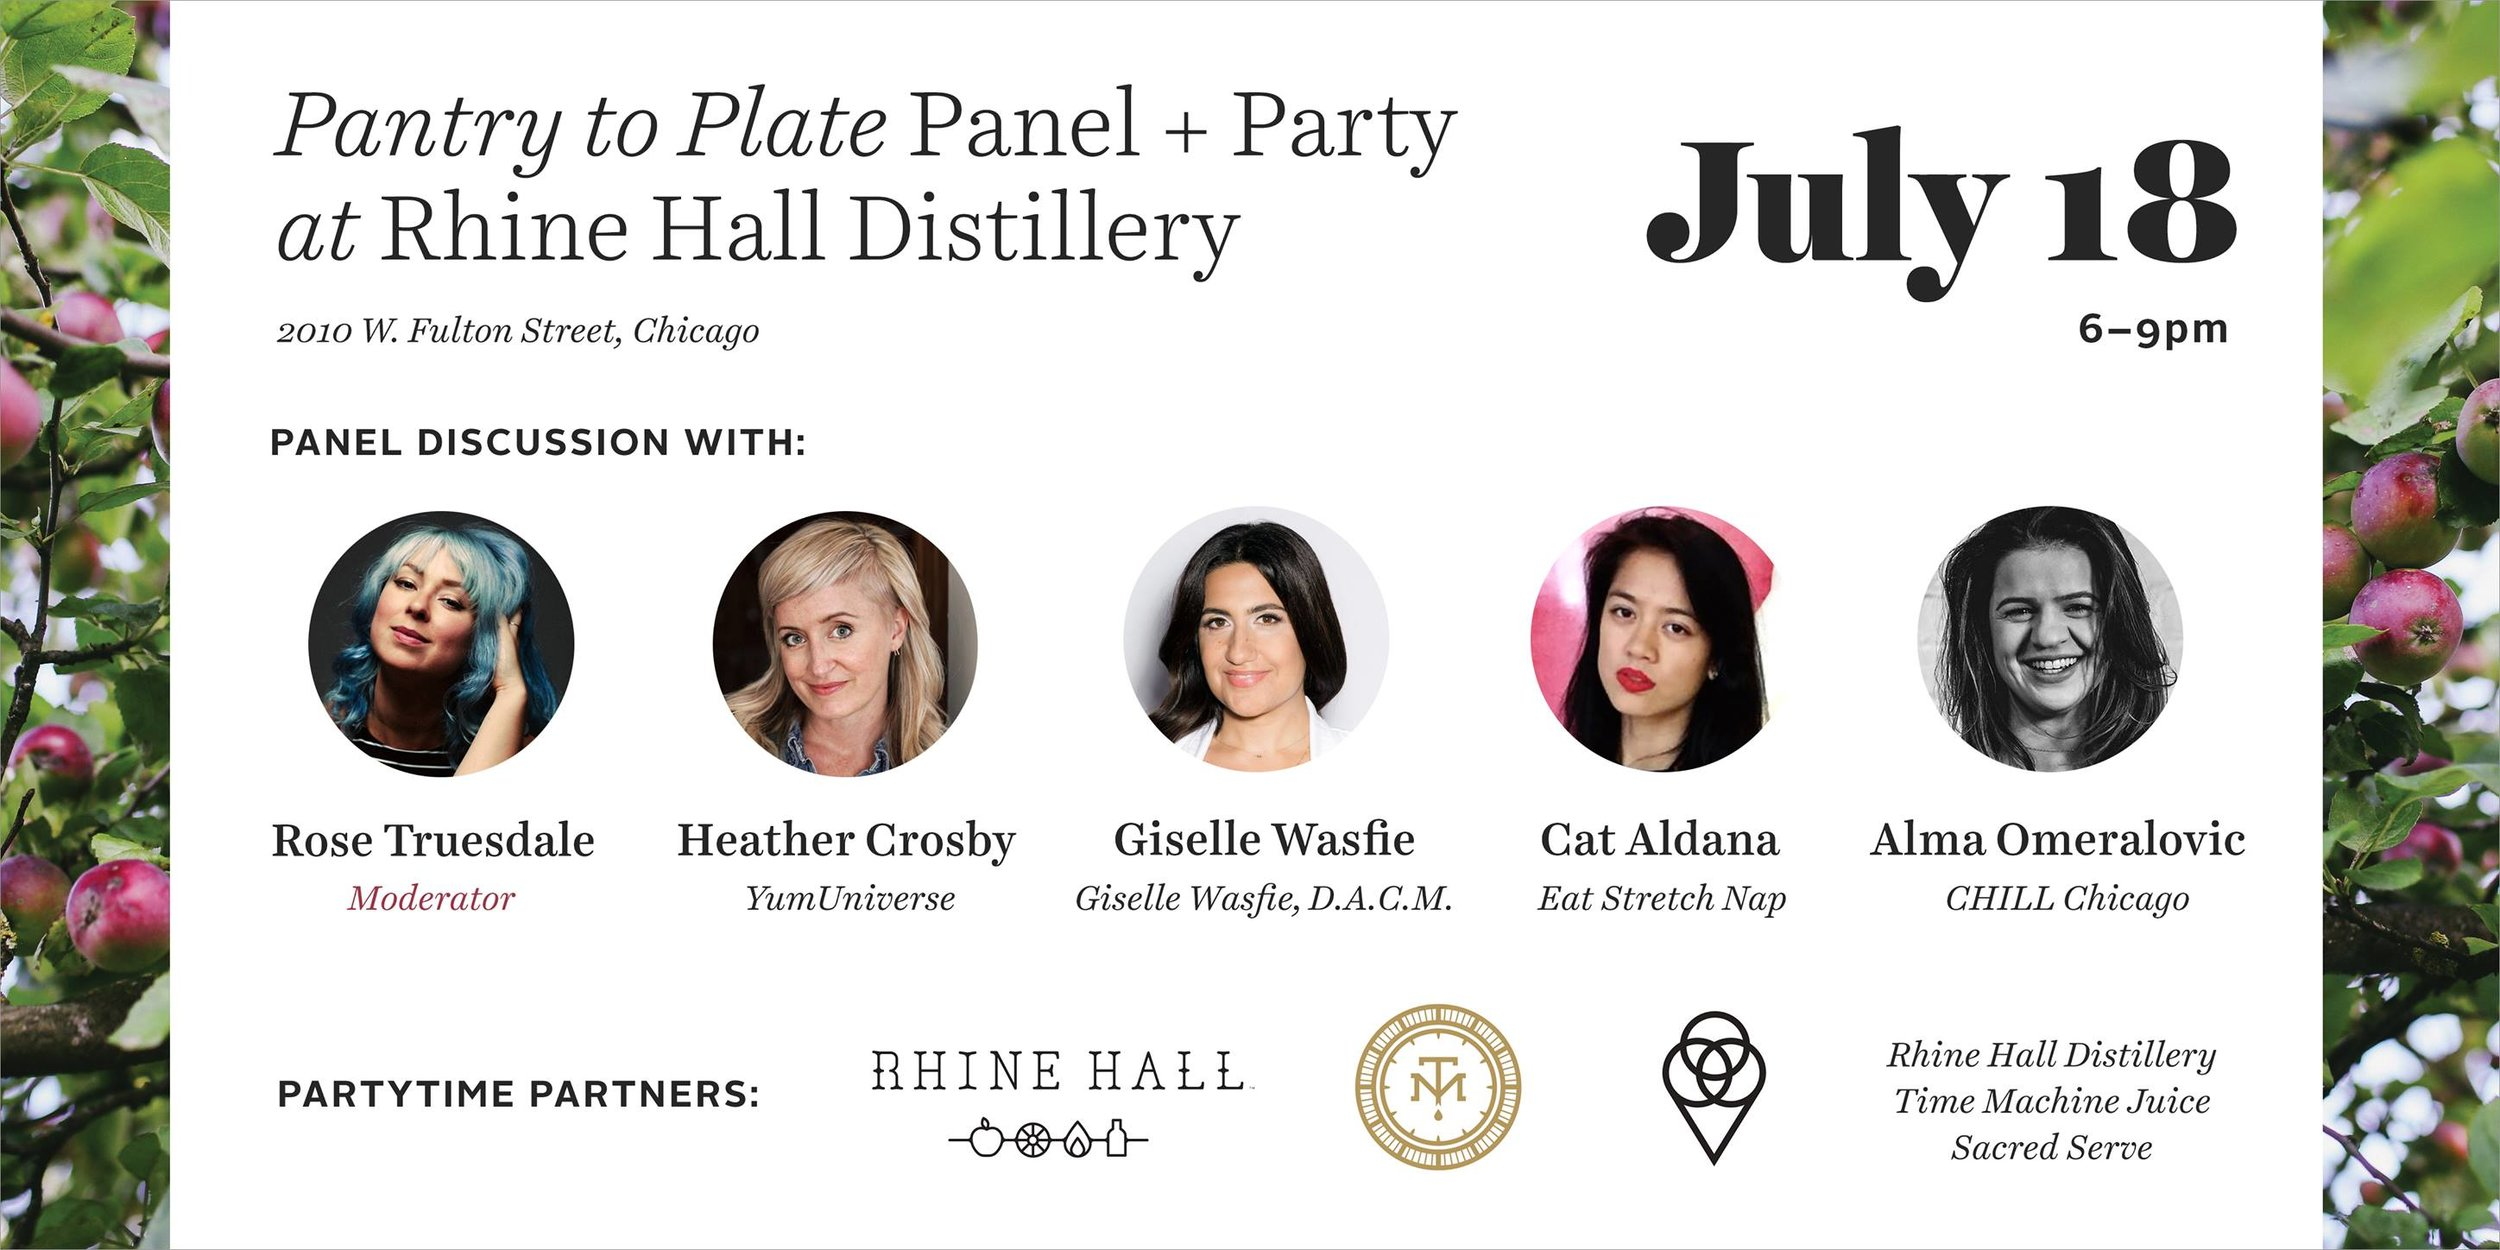 "Pantry to Plate Panel + Party! July 18, 6-9pm, Rhine Hall Ticket price: $25 GET TIX —>  http://bit.ly/2rFyui3   Join Heather Crosby, author of the newly released "" YumUniverse™  Pantry to Plate cookbook,"" for a wellness-y panel discussion, book signing, and plant-based cocktail party.  Panel guests including YumUniverse's own Heather Crosby, Giselle Wasfie of Remix Acupuncture and Remix Lifestyle, Cat Aldana of  EAT STRETCH NAP , and Alma Omeralovic of  Chill  Chicago Meditation. Expect an enlightening discussion on female entrepreneurship in the wellness sphere and self-care in the midst of hustle moderated by  Rose Truesdale . The panel will close with a guided meditation for us all to reflect on what we learned.  Then it's time to party! Local lady-makers  RHINE HALL ,  Time Machine , and Sacred Serve plant-based gelato are combining forces for a collaborative boozy cocktail float, included in your ticket price. And a Rhine Hall cash bar will be open all evening long.  Copies of ""YumUniverse Pantry to Plate"" will be available for purchase and signing.   Can't wait to see you there!"